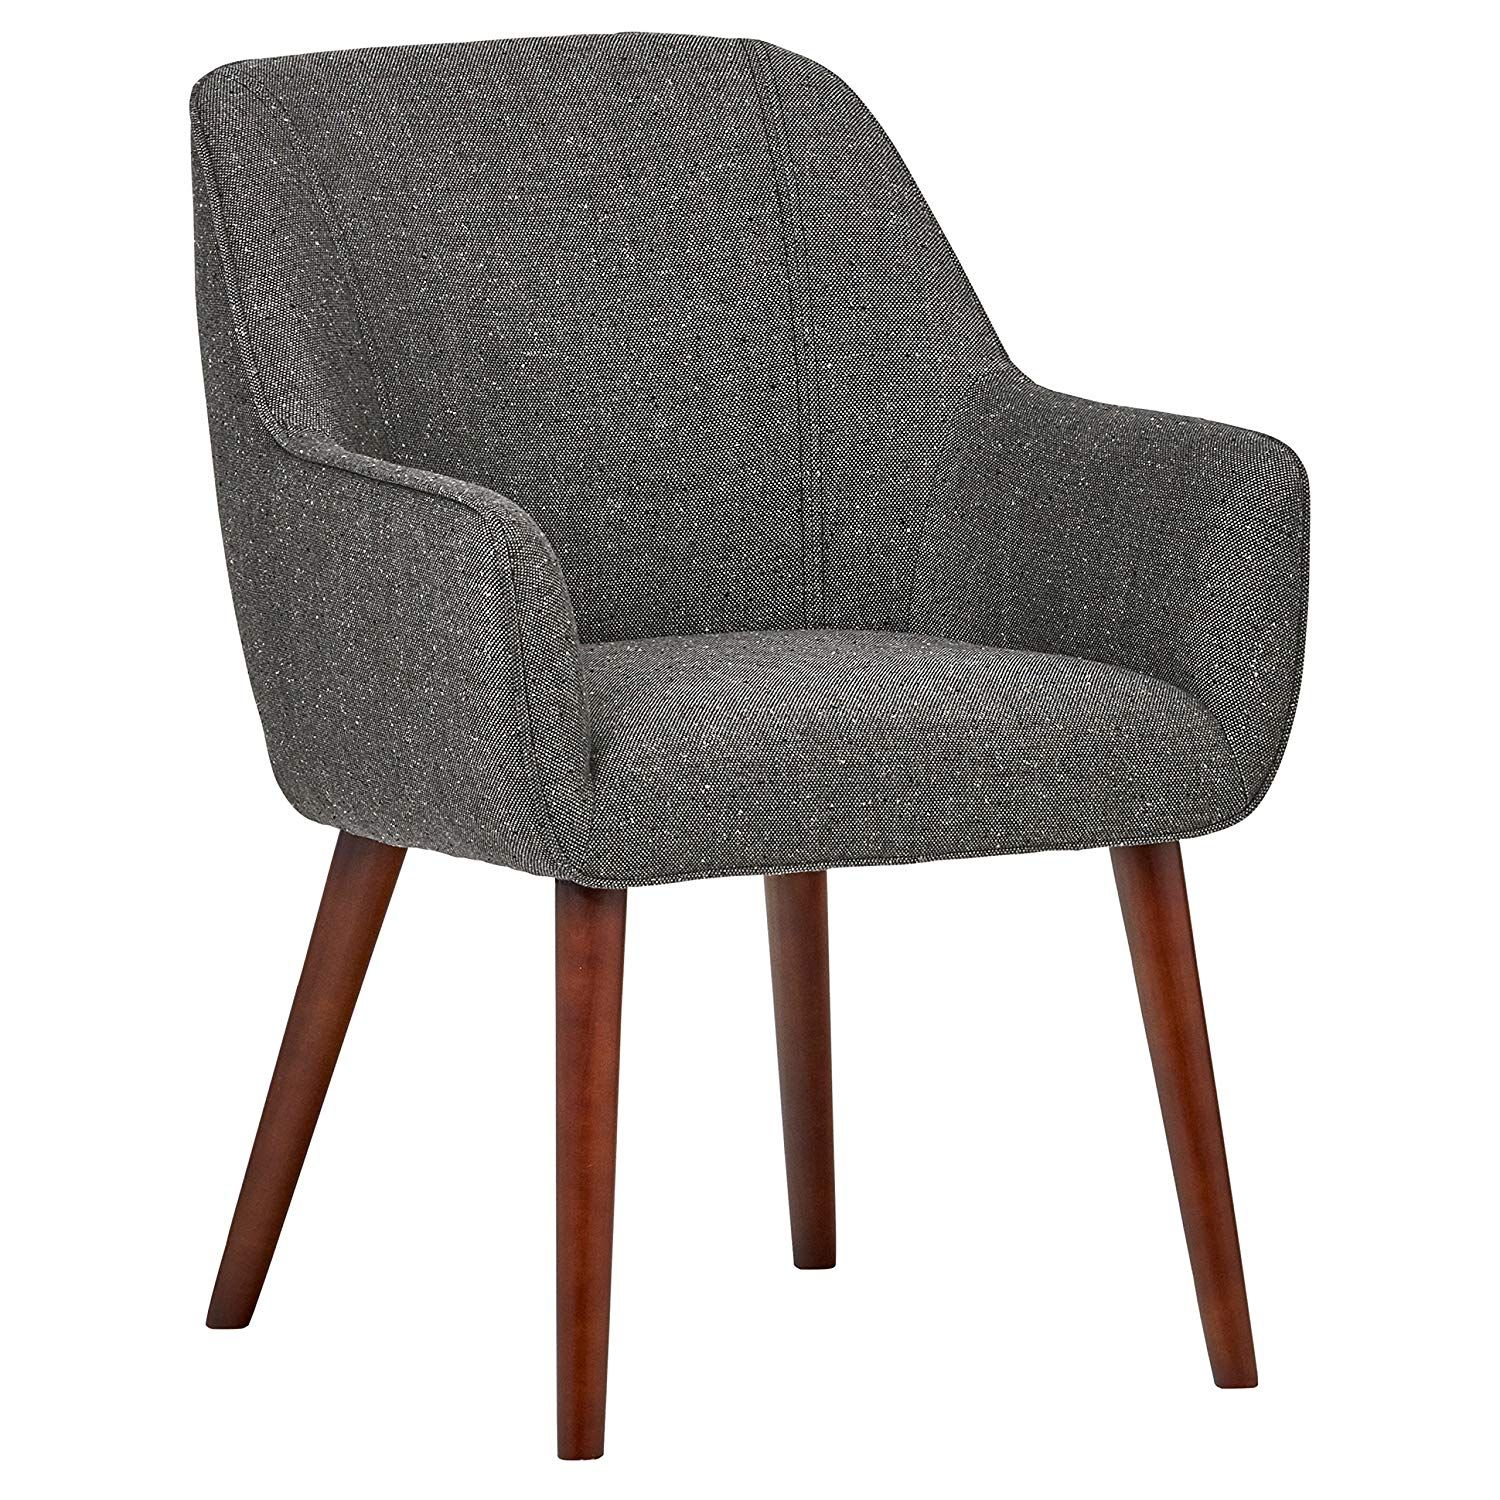 Awe Inspiring This Classic Mid Century Modern Accent Chair Features A Pabps2019 Chair Design Images Pabps2019Com